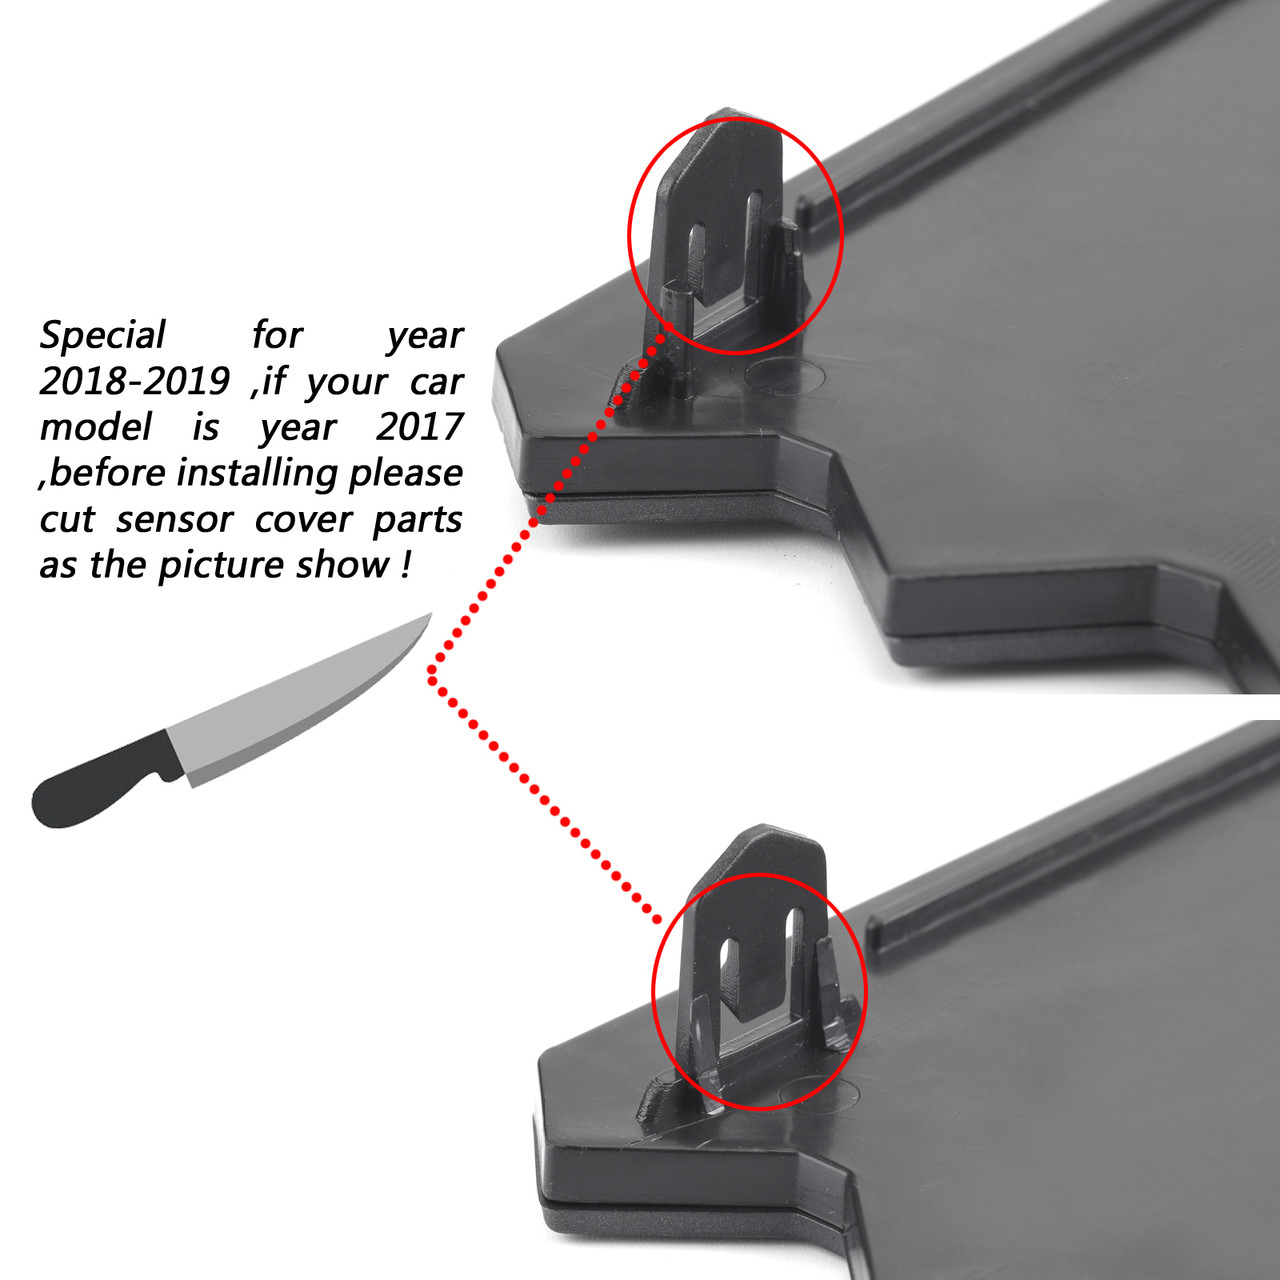 Trim off the tab of the sensor cover as shown, this only apply to 2017 models